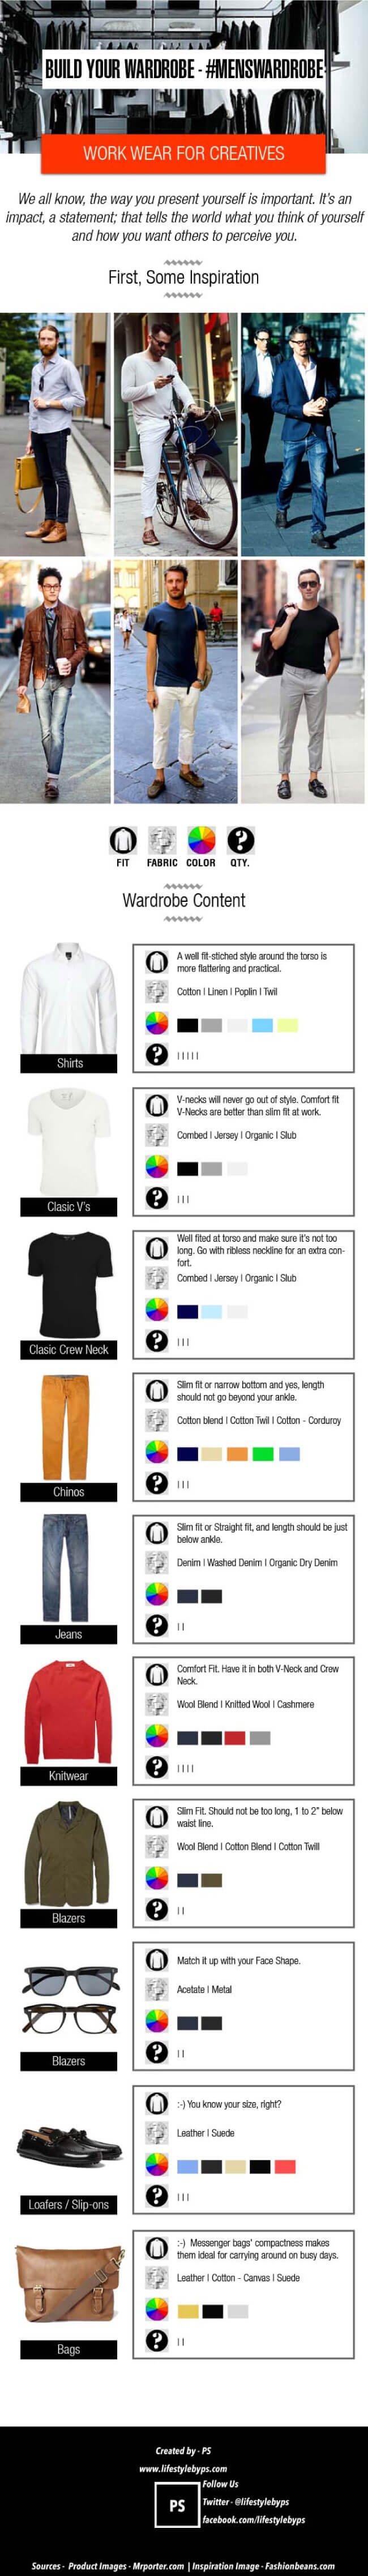 Image with title Tips to Build your Work Wardrobe for Creatives